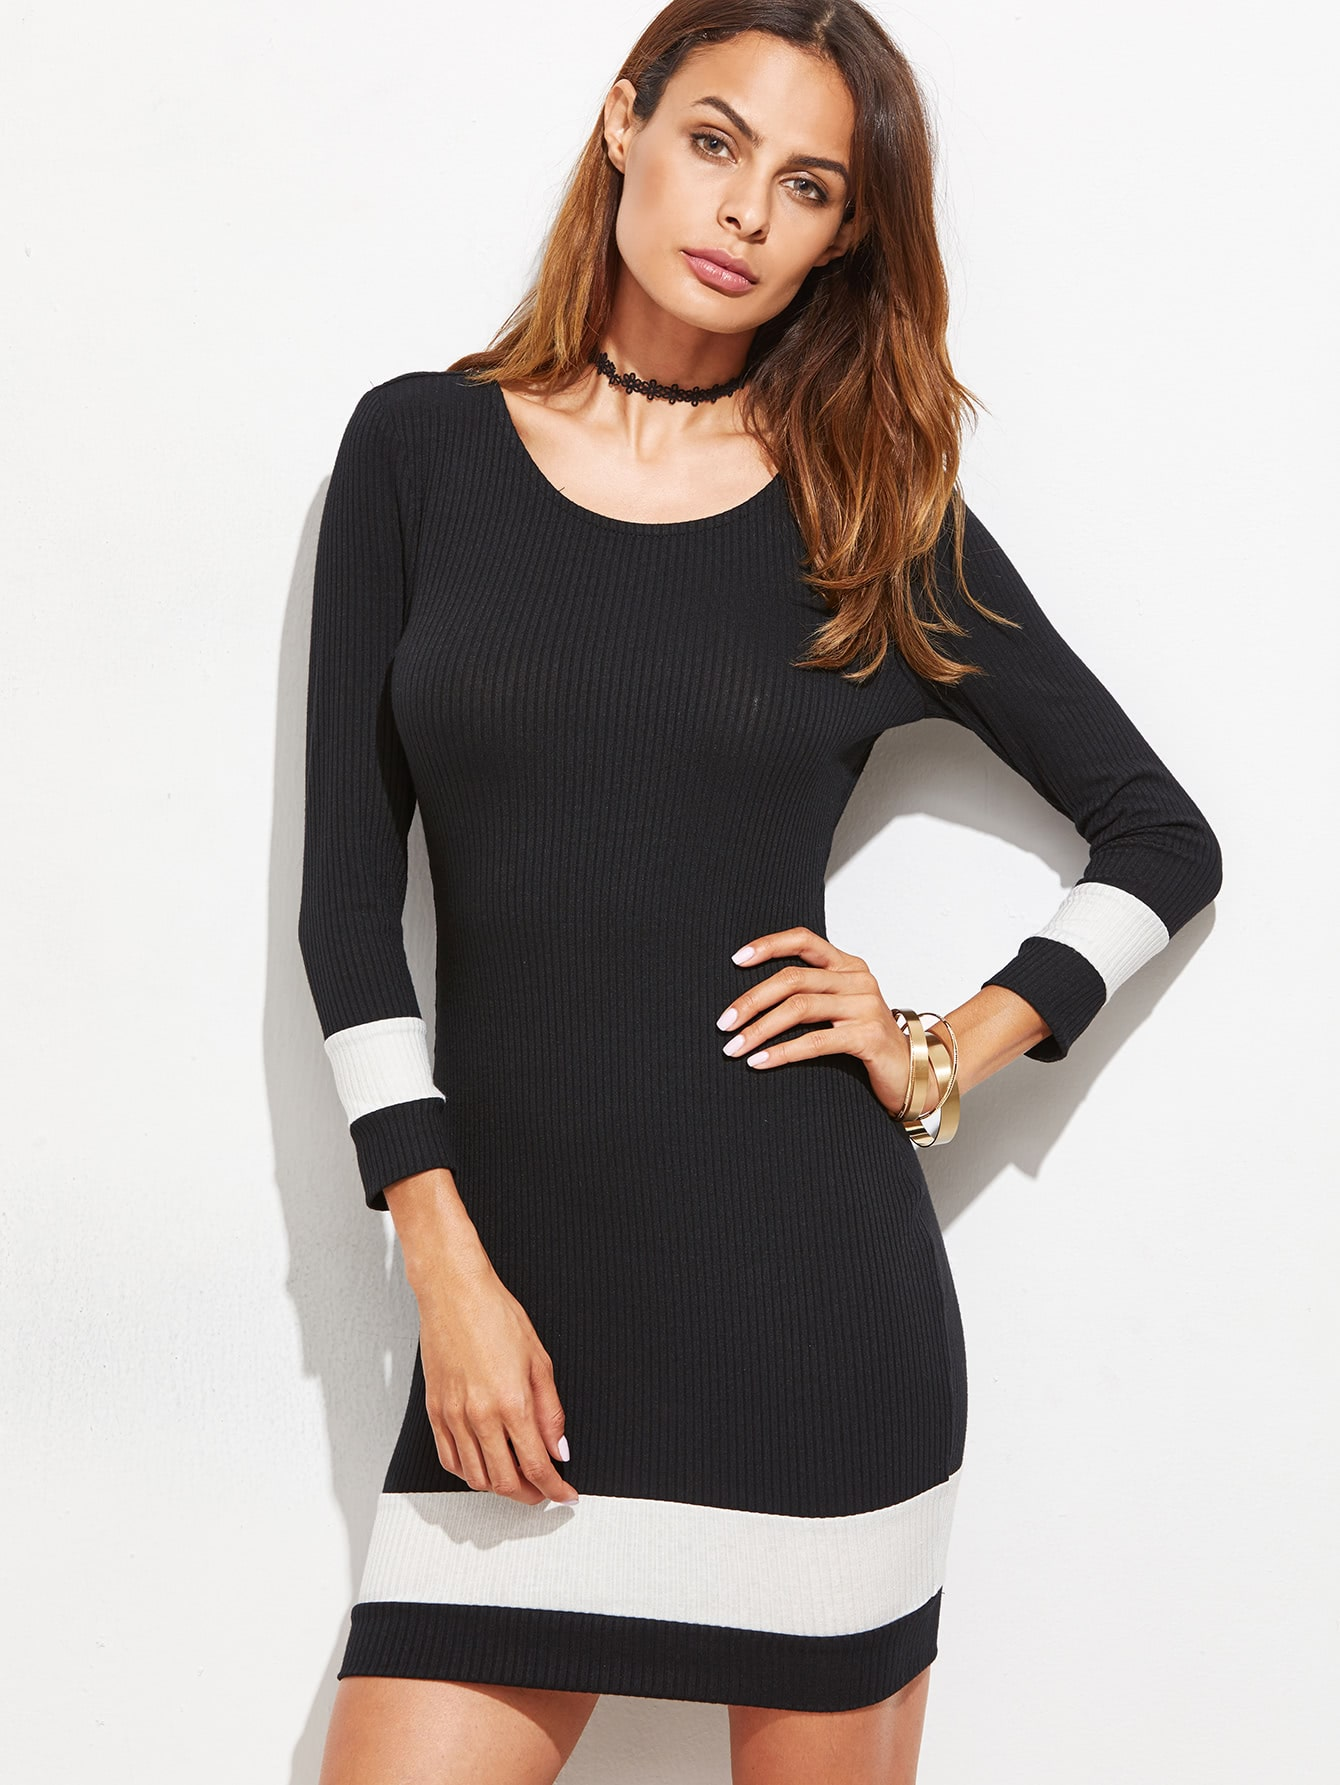 Black Contrast Panel Ribbed Bodycon Dress dress161019729